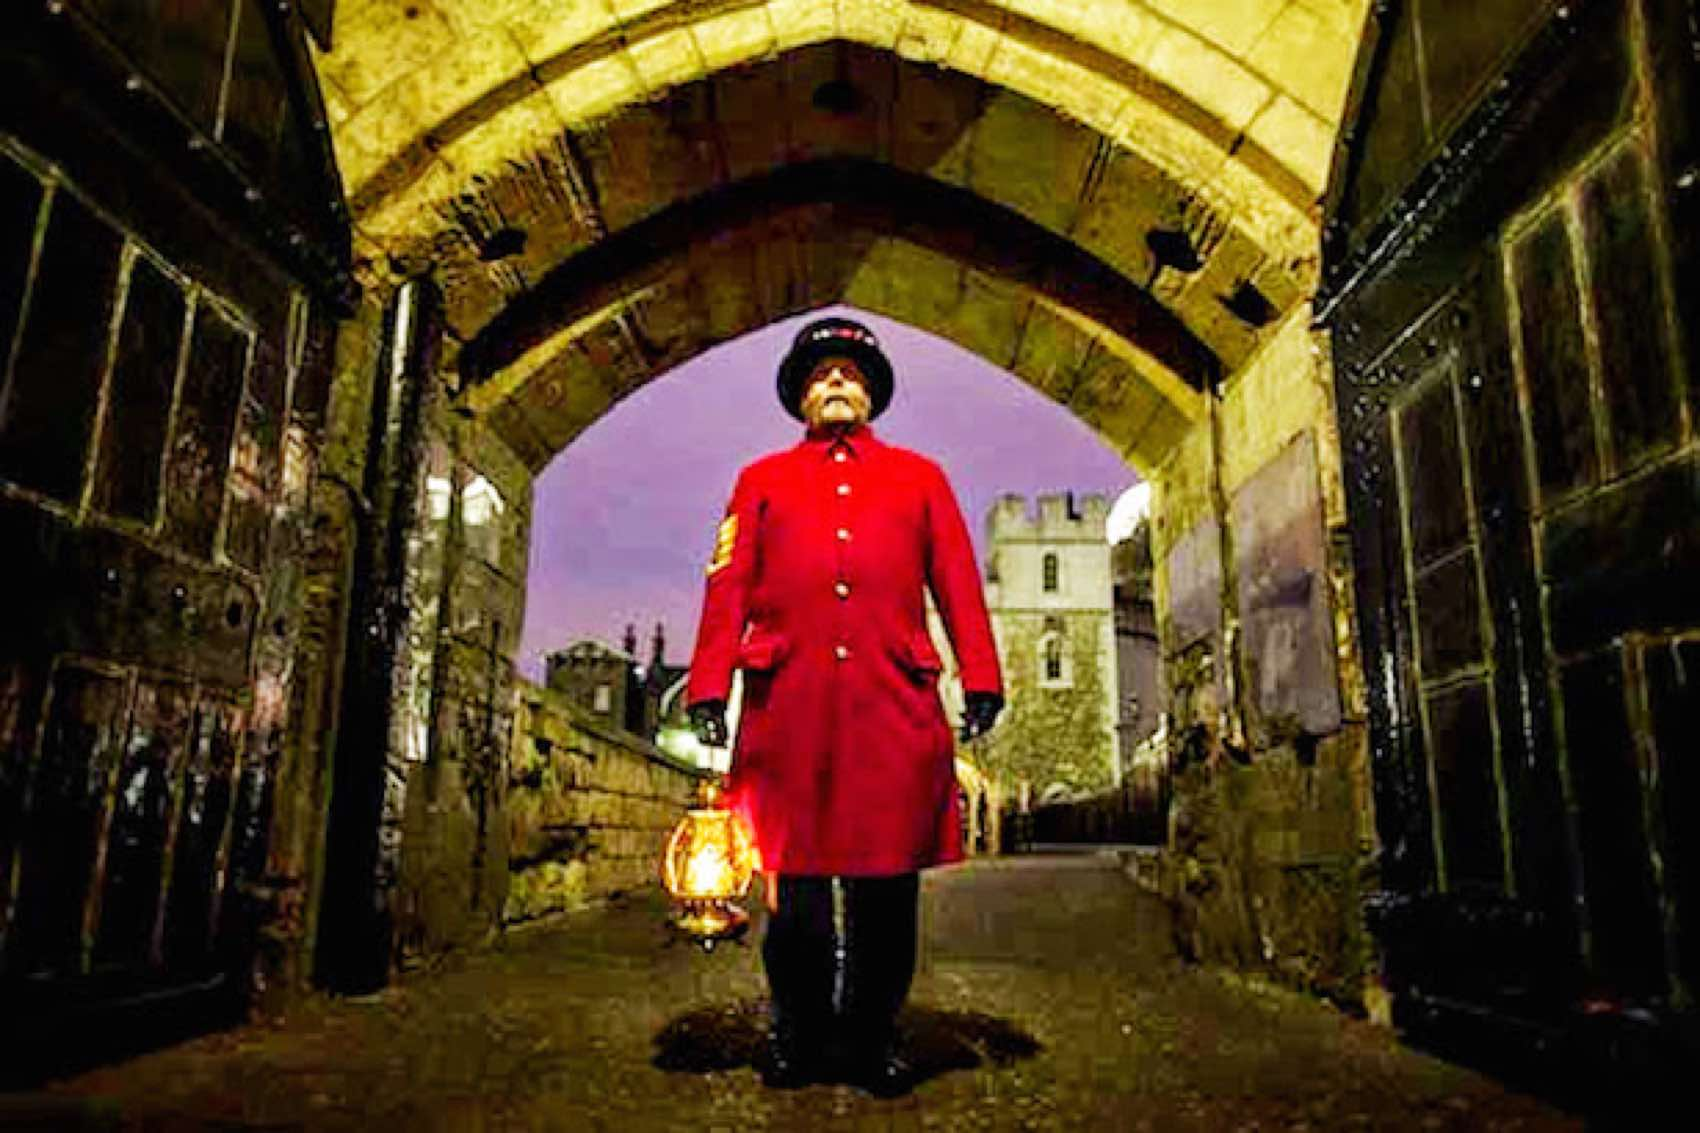 The Yeoman Warders – often called Beefeaters